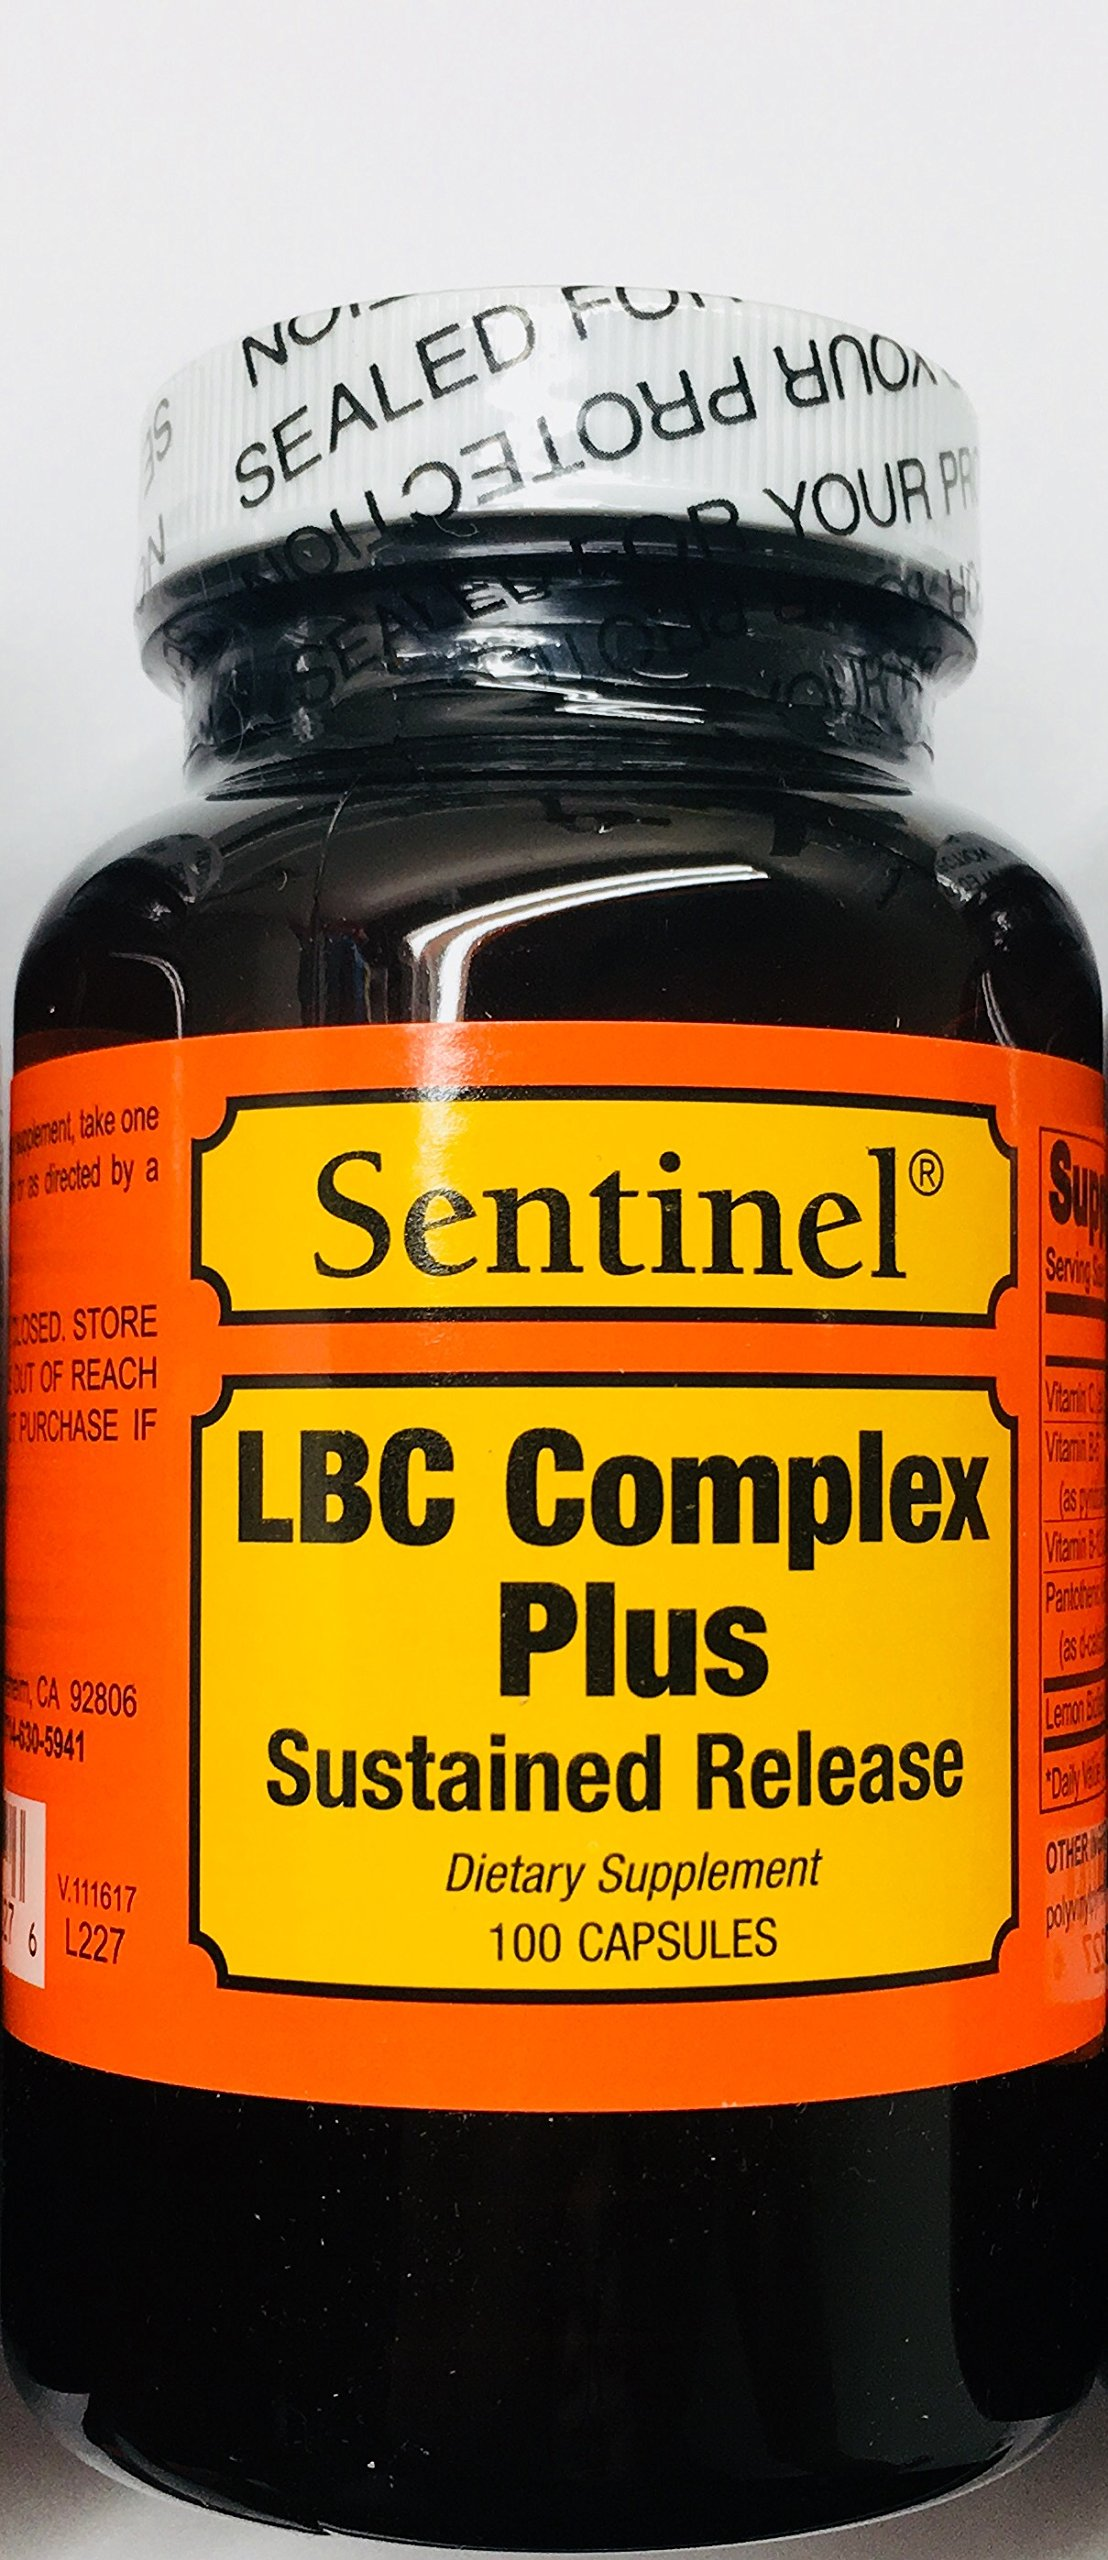 LBC Complex Sustained Release, Lemon Bio-Flavonoid Health Supplement for Relief from Ringing Ear - 100 Count Bottle - 50 Day Supply